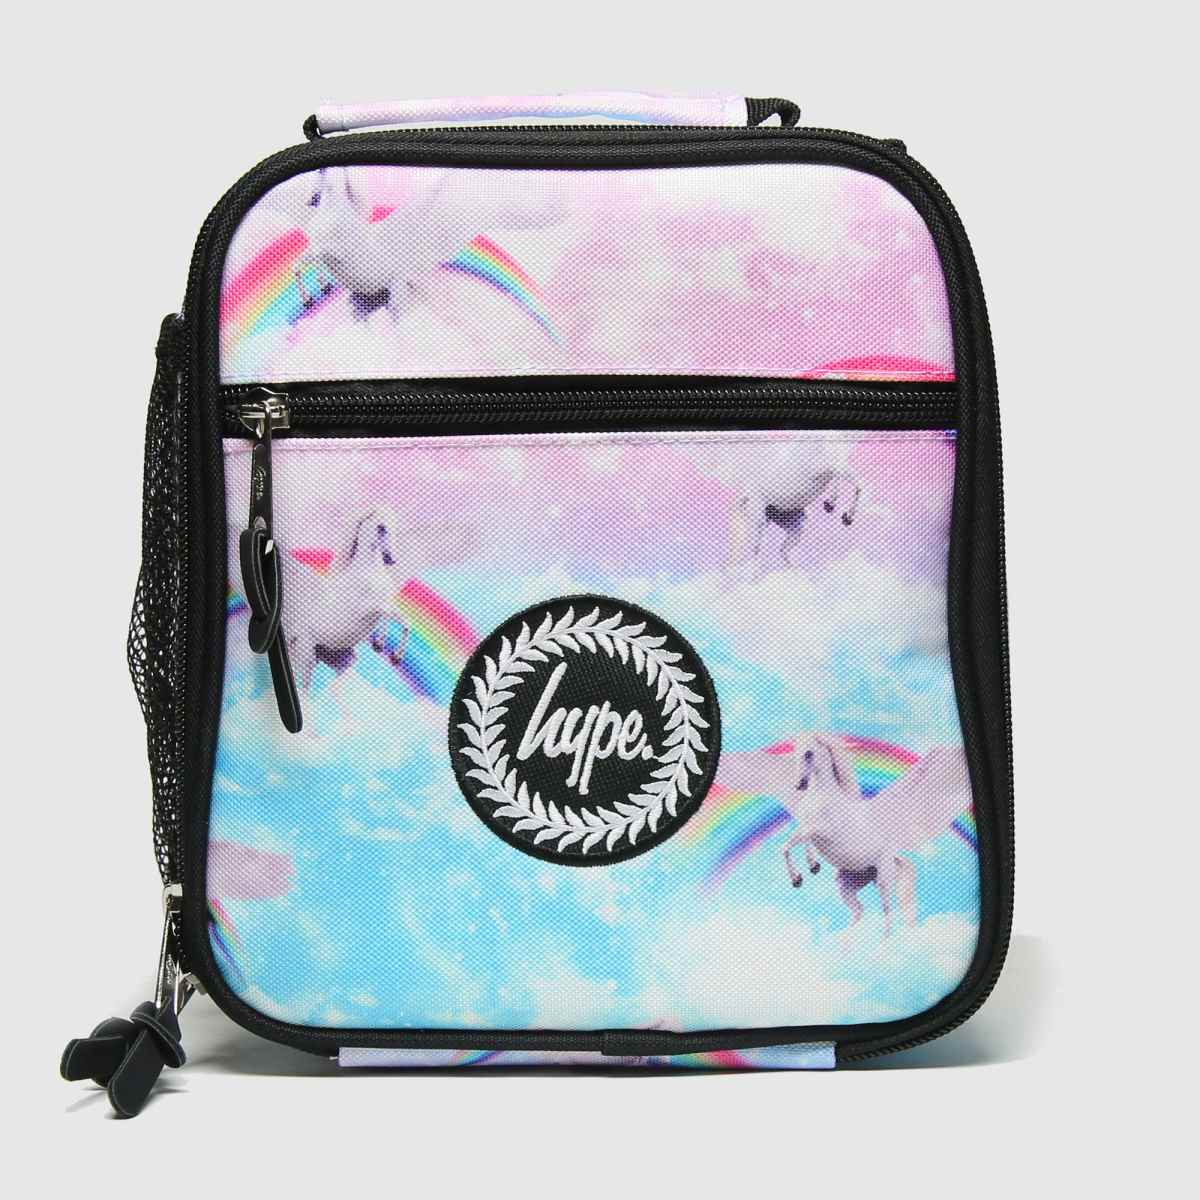 Accessories Hype White & Pink Lunch Bag